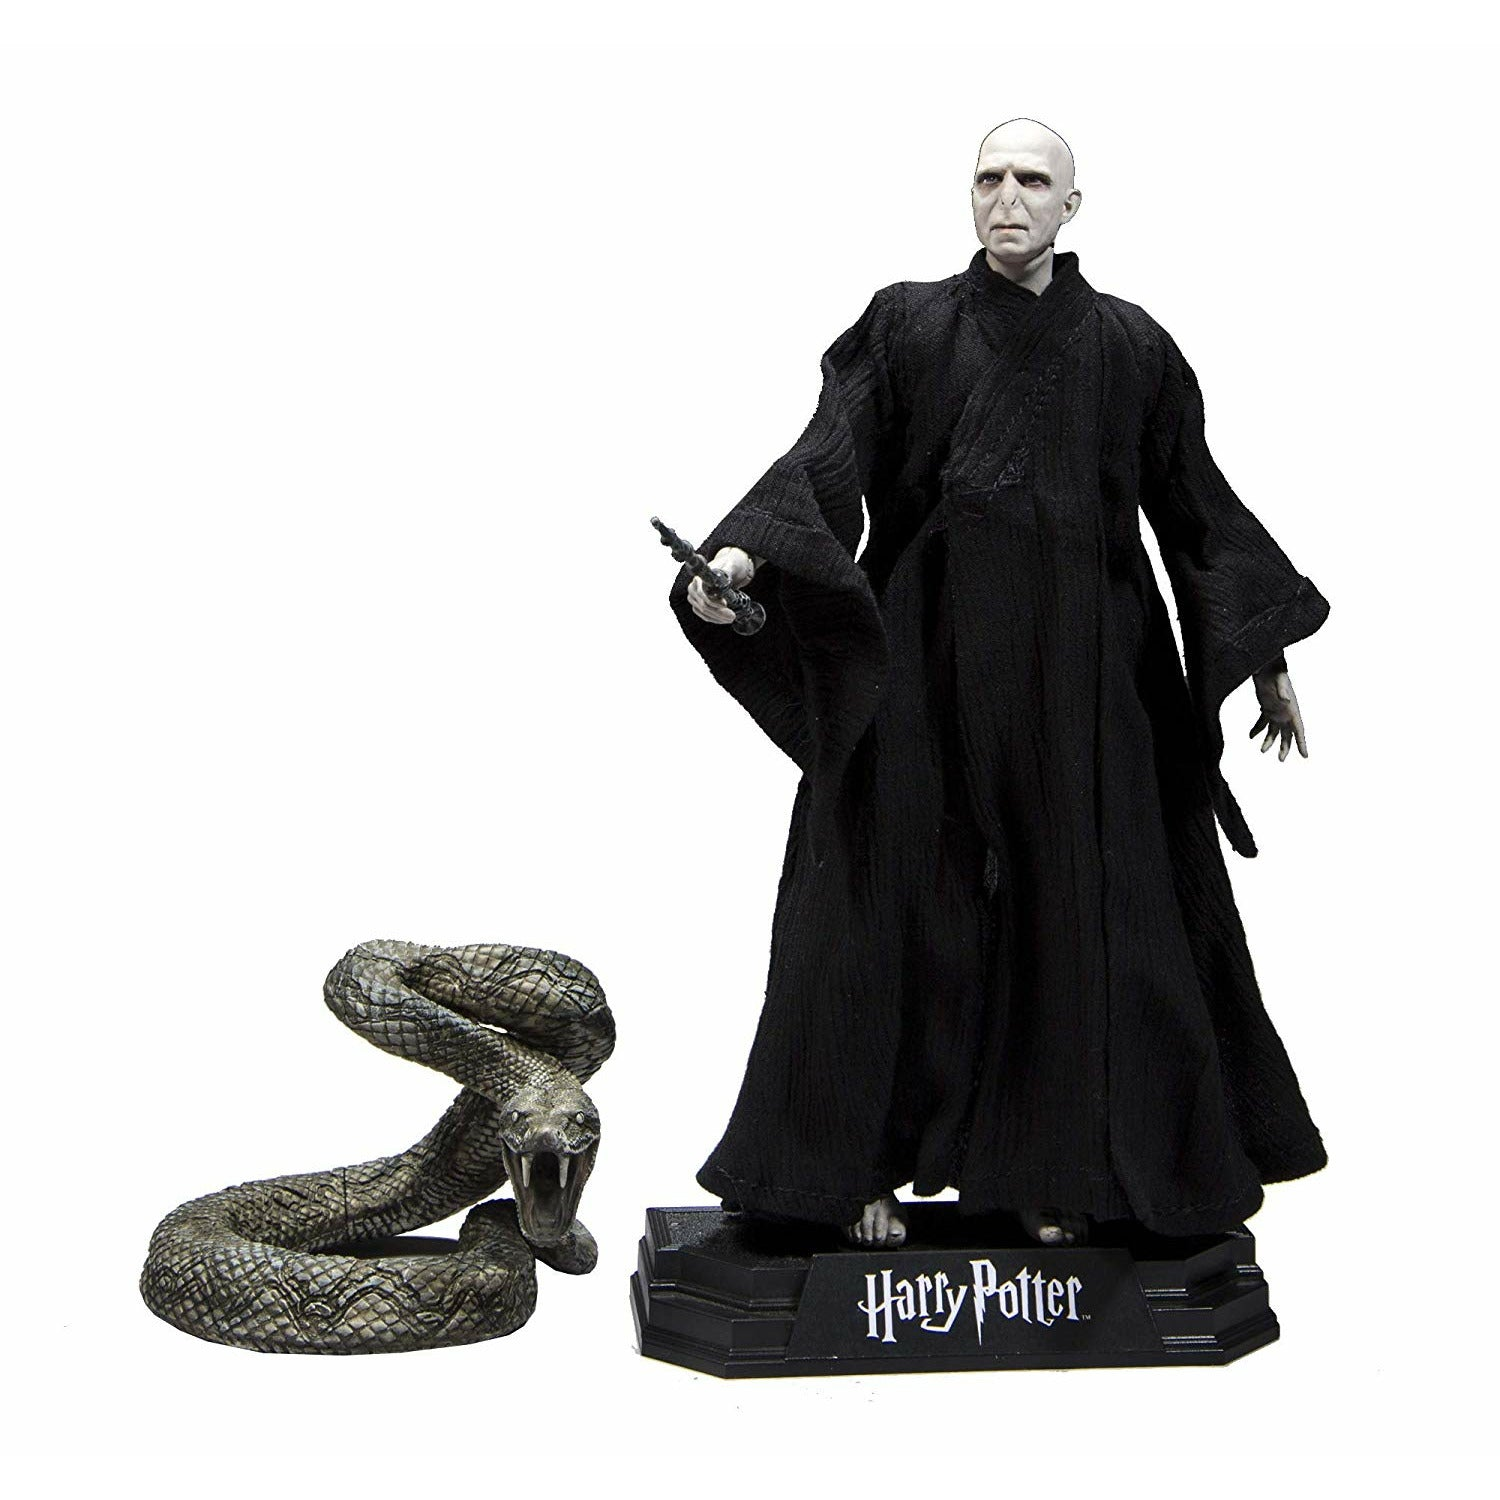 Harry Potter and the Deathly Hallows Part 2 Lord Voldemort 7 inch Action Figure